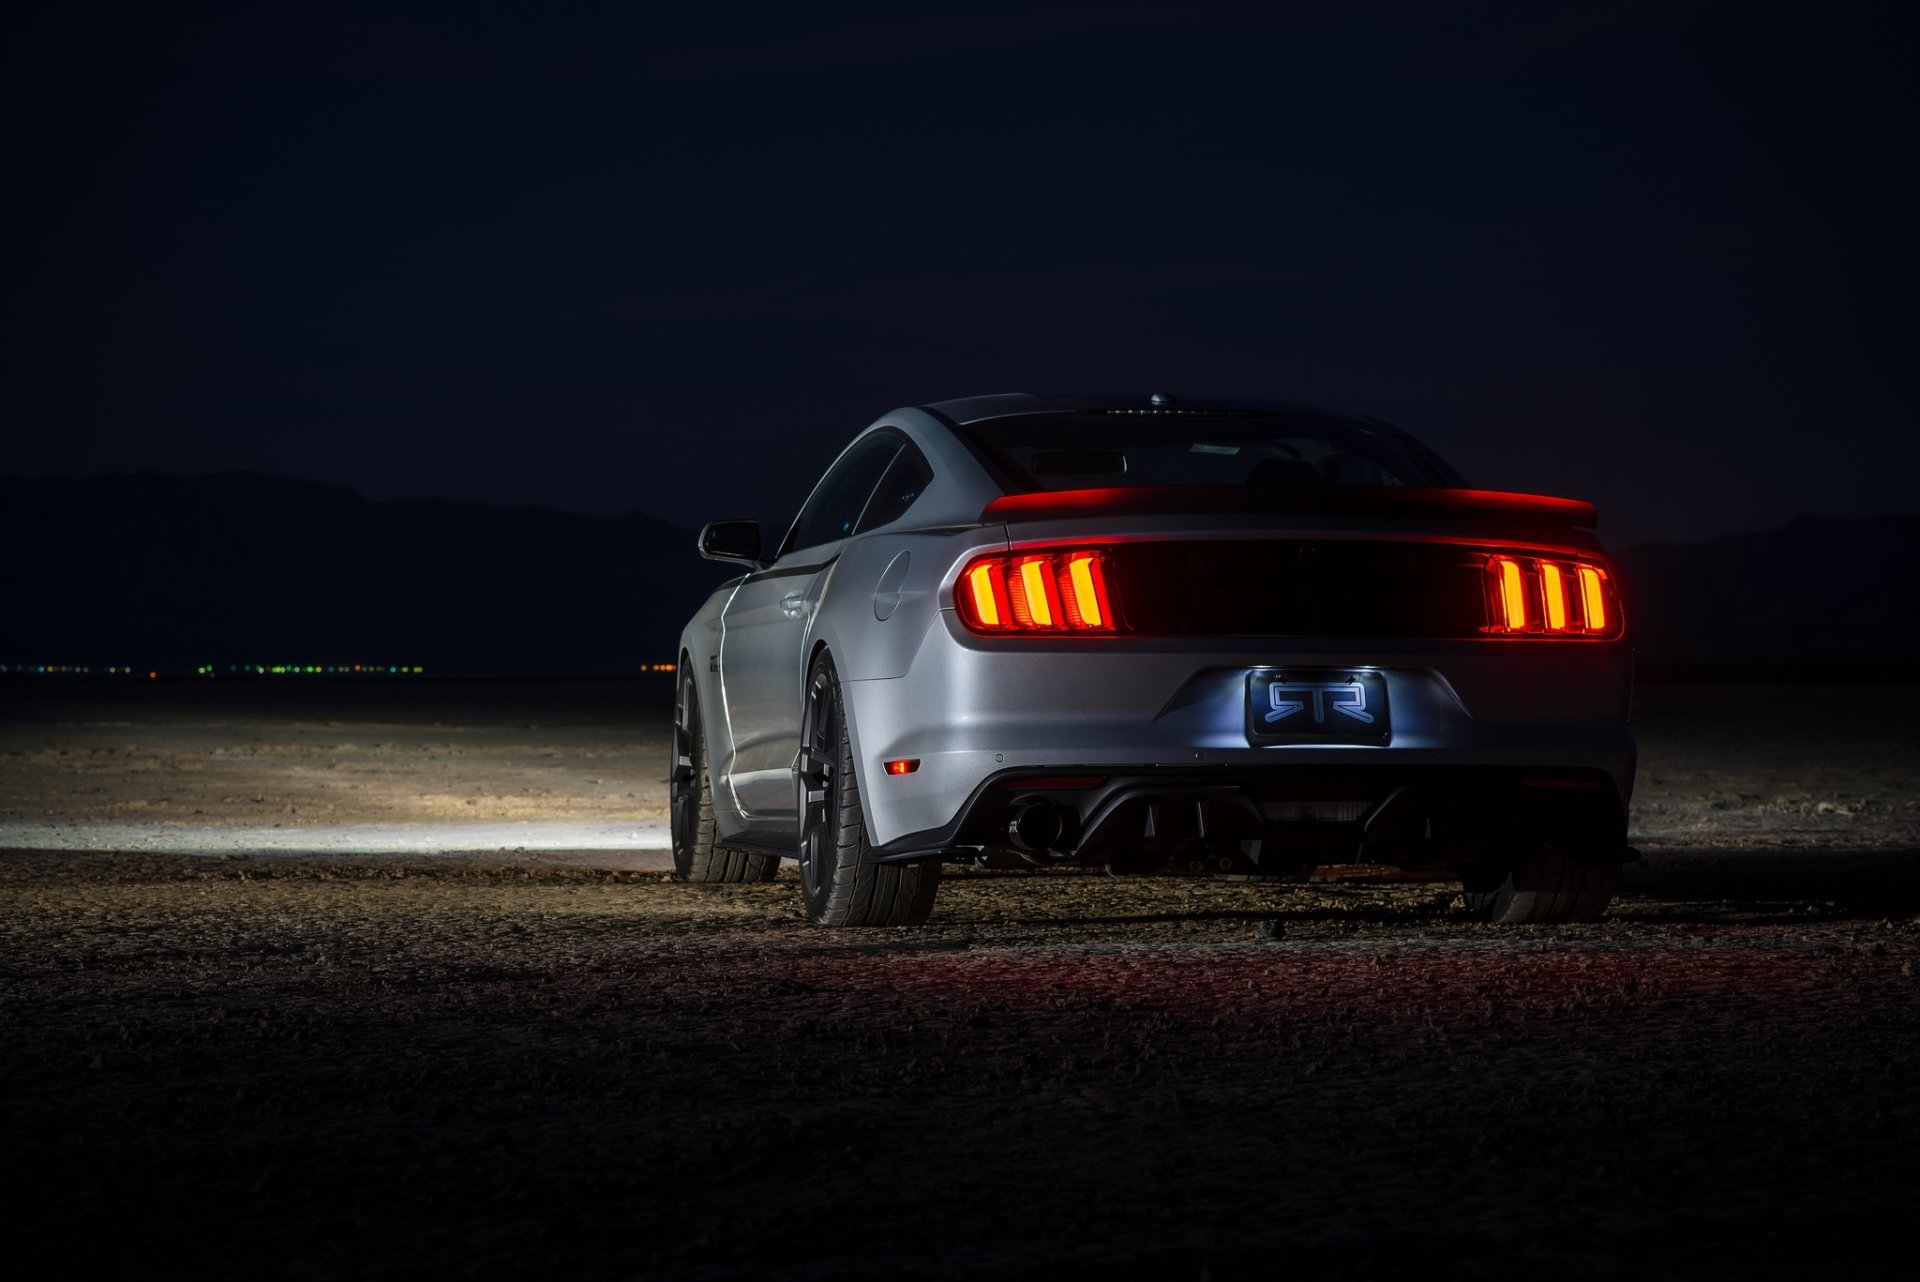 Standard Vs Full Size Car >> Ford Mustang RTR HD Wallpaper | Background Image | 2048x1367 | ID:771106 - Wallpaper Abyss